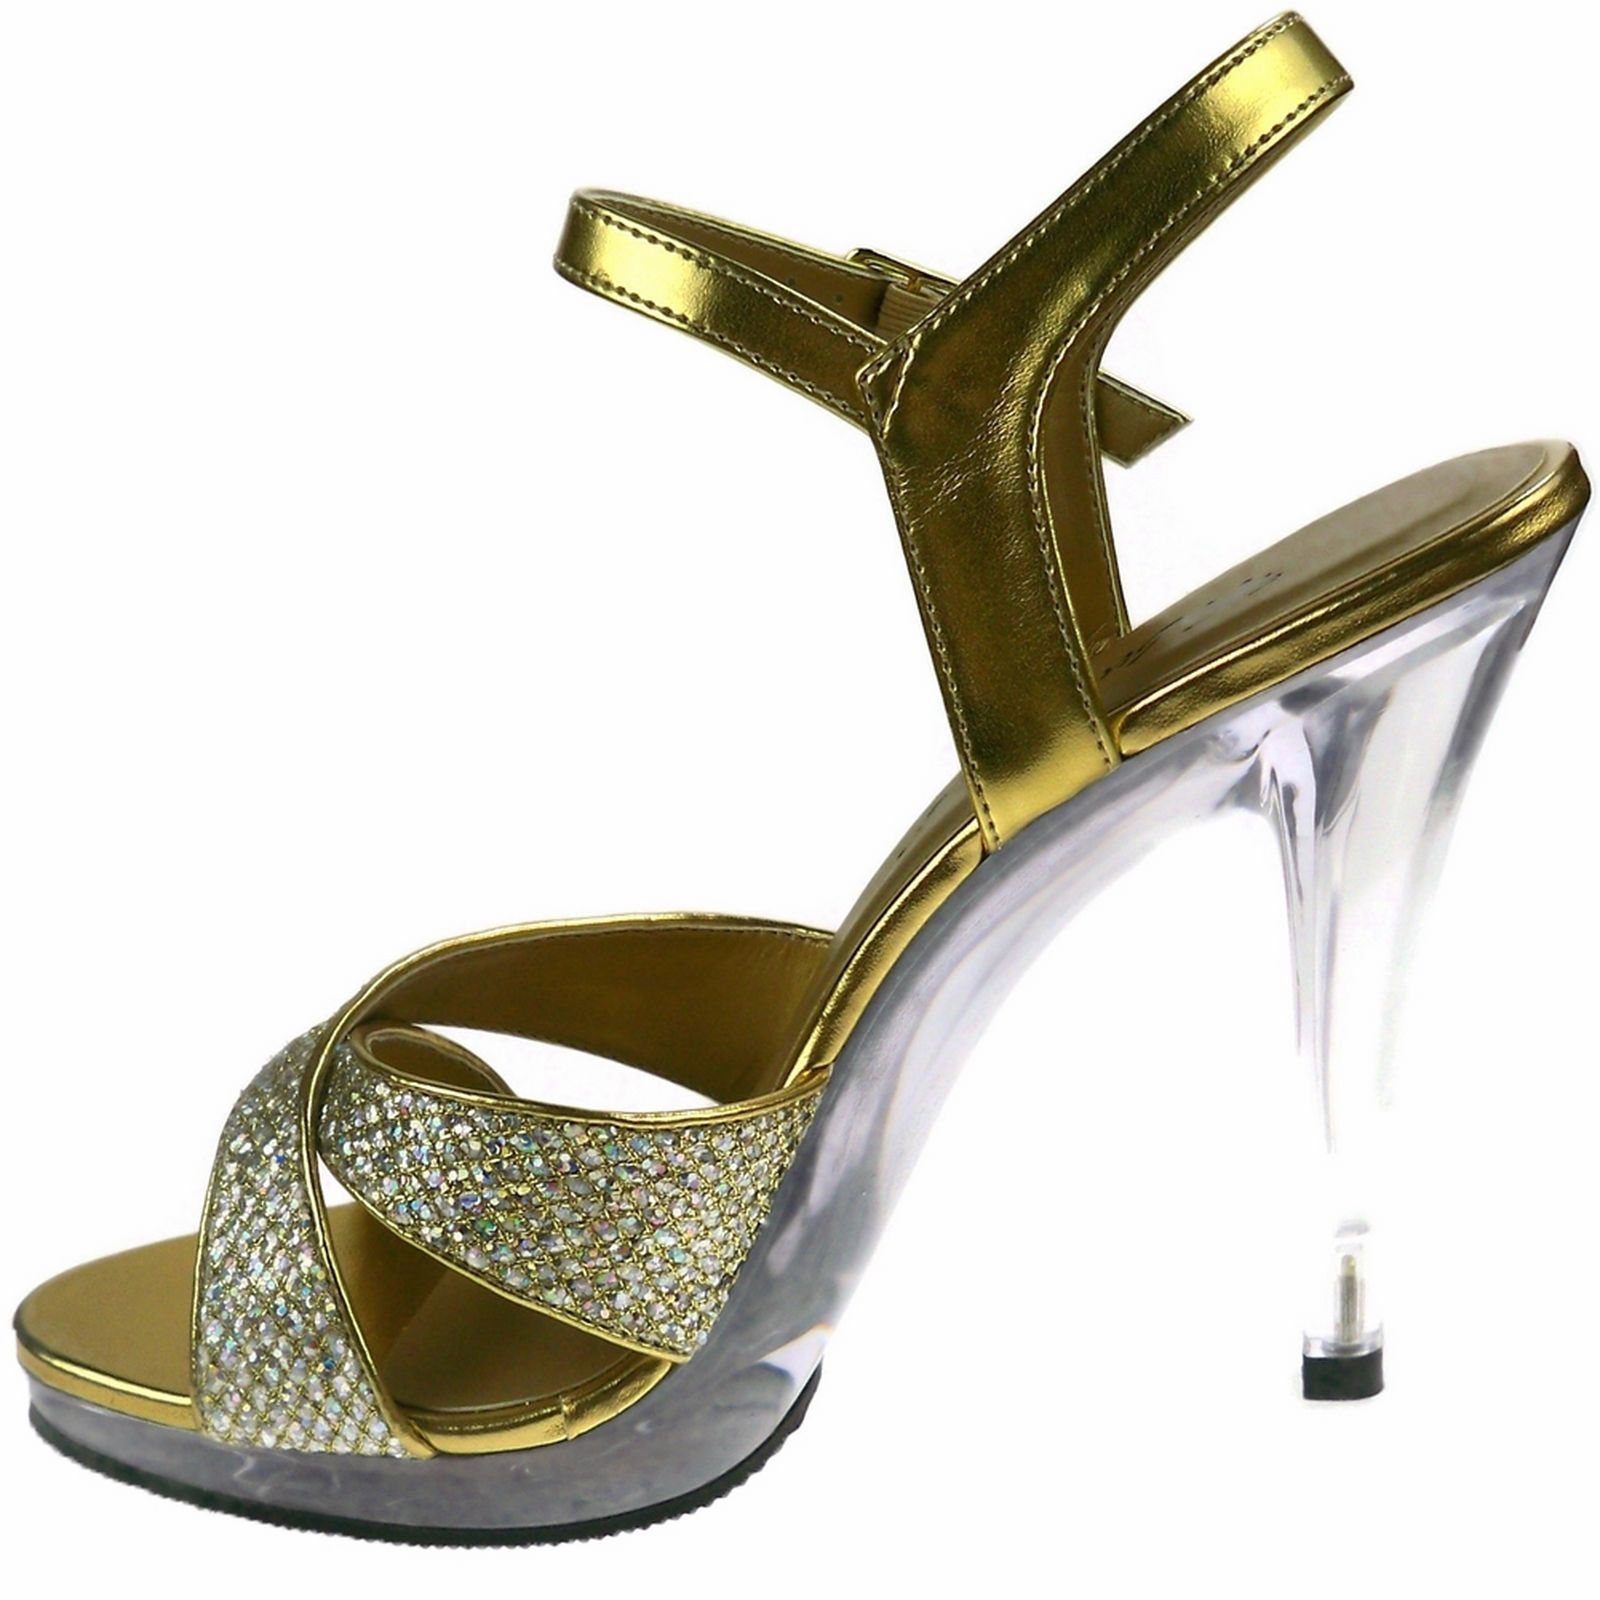 PLEASER Sandals Crisscross Glitter Platform Clear High Heels FLAIR-419G Gold